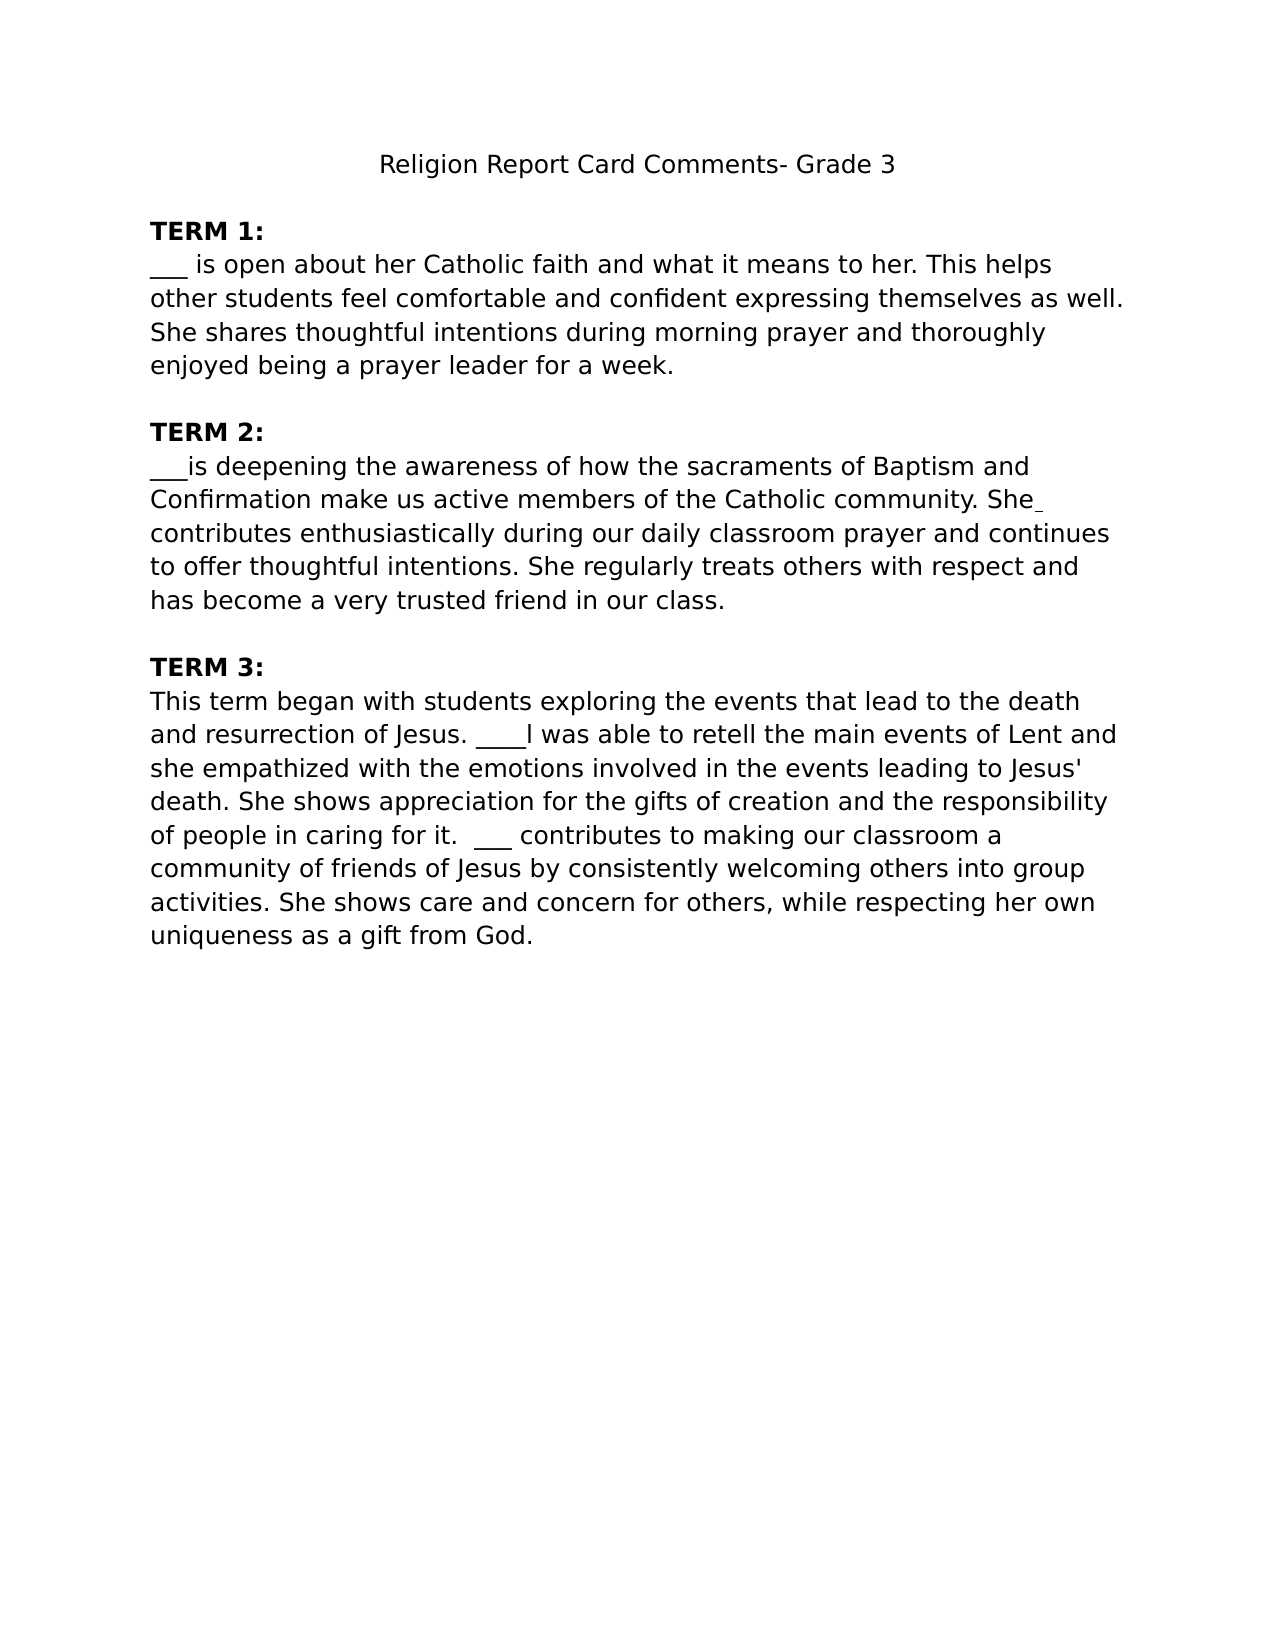 Writing comments for reports   ppt video online download NSW Public Schools  Finance System Transition